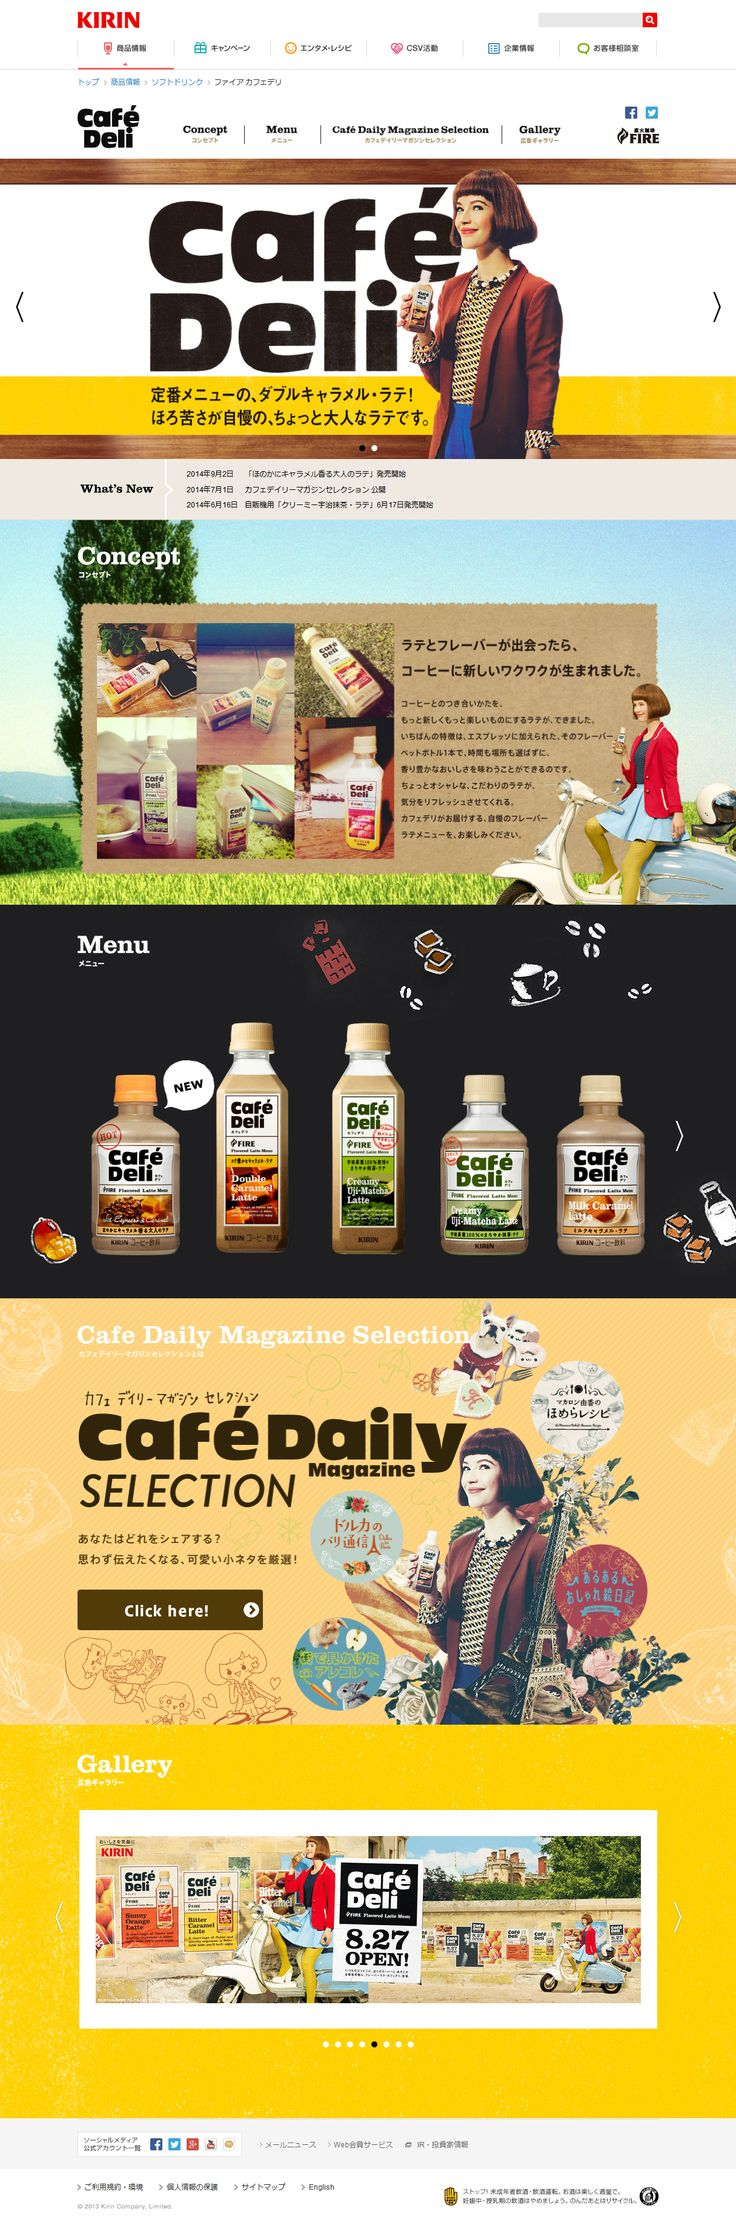 http://www.kirin.co.jp/products/softdrink/fire-cafedeli/index.php